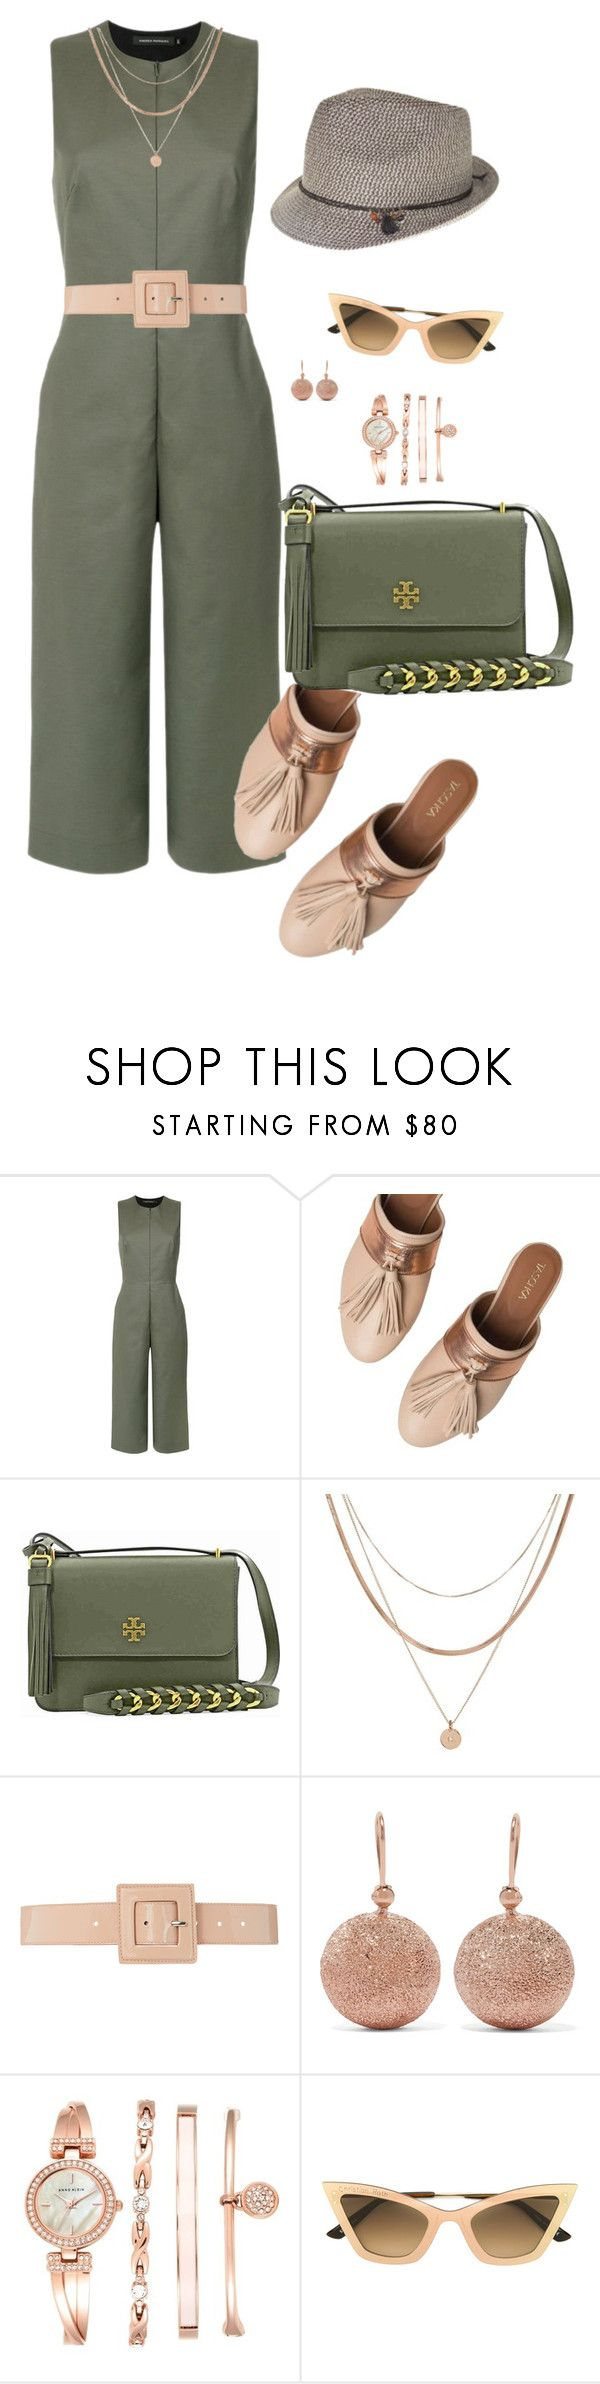 """Tendência 2018: macacão pirata"" by doramoleiro ❤ liked on Polyvore featuring Andrea Marques, Taschka, Tory Burch, Luv Aj, B-Low the Belt, Carolina Bucci, Anne Klein, Christian Roth, Nine West and jumpsuit"